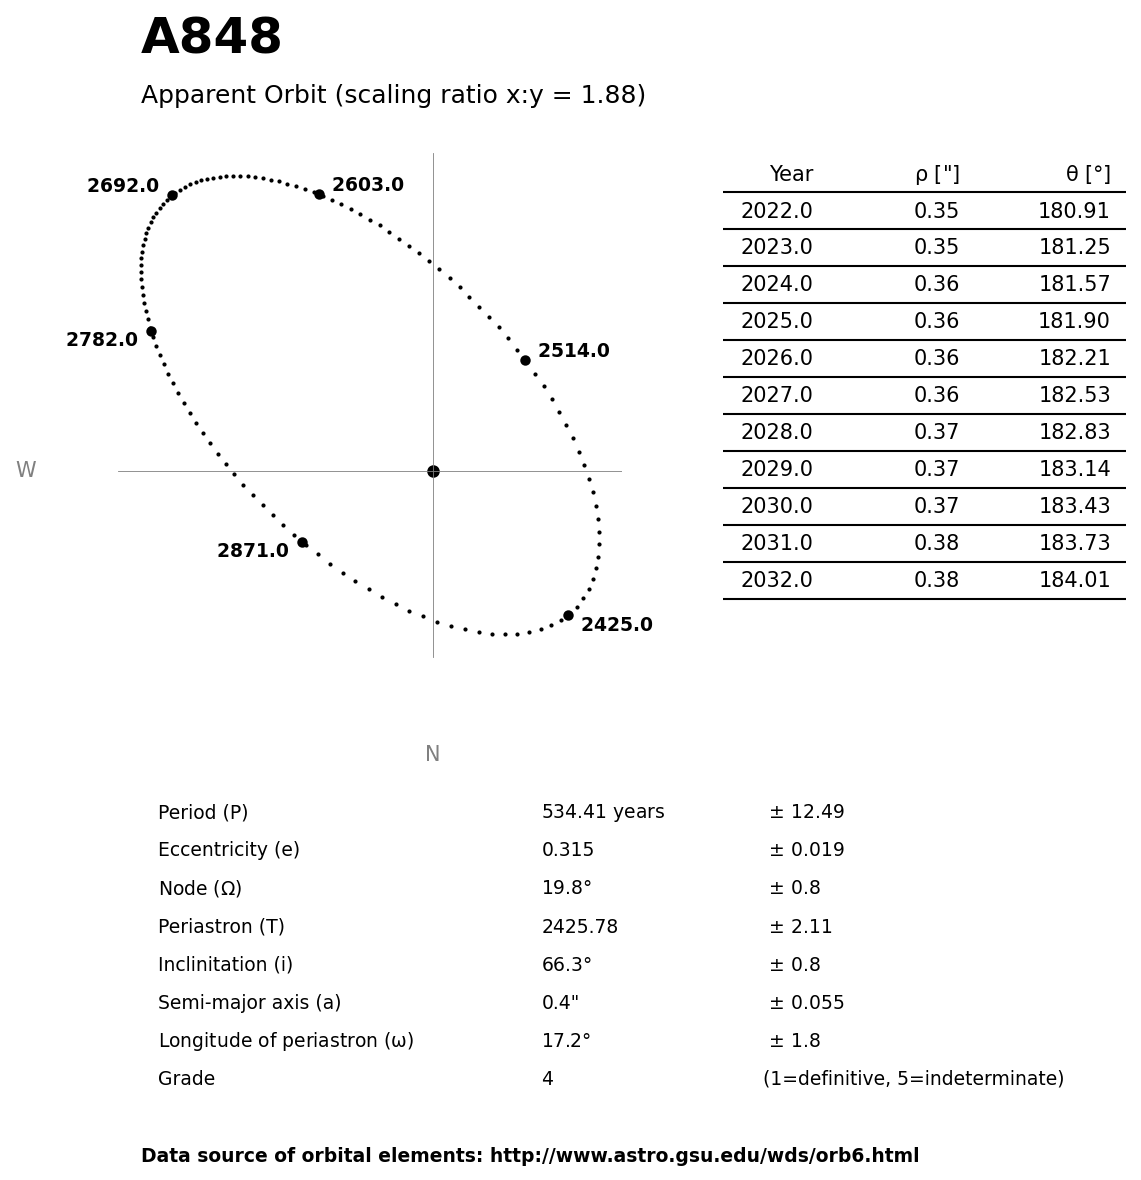 ../images/binary-star-orbits/A848-orbit.jpg